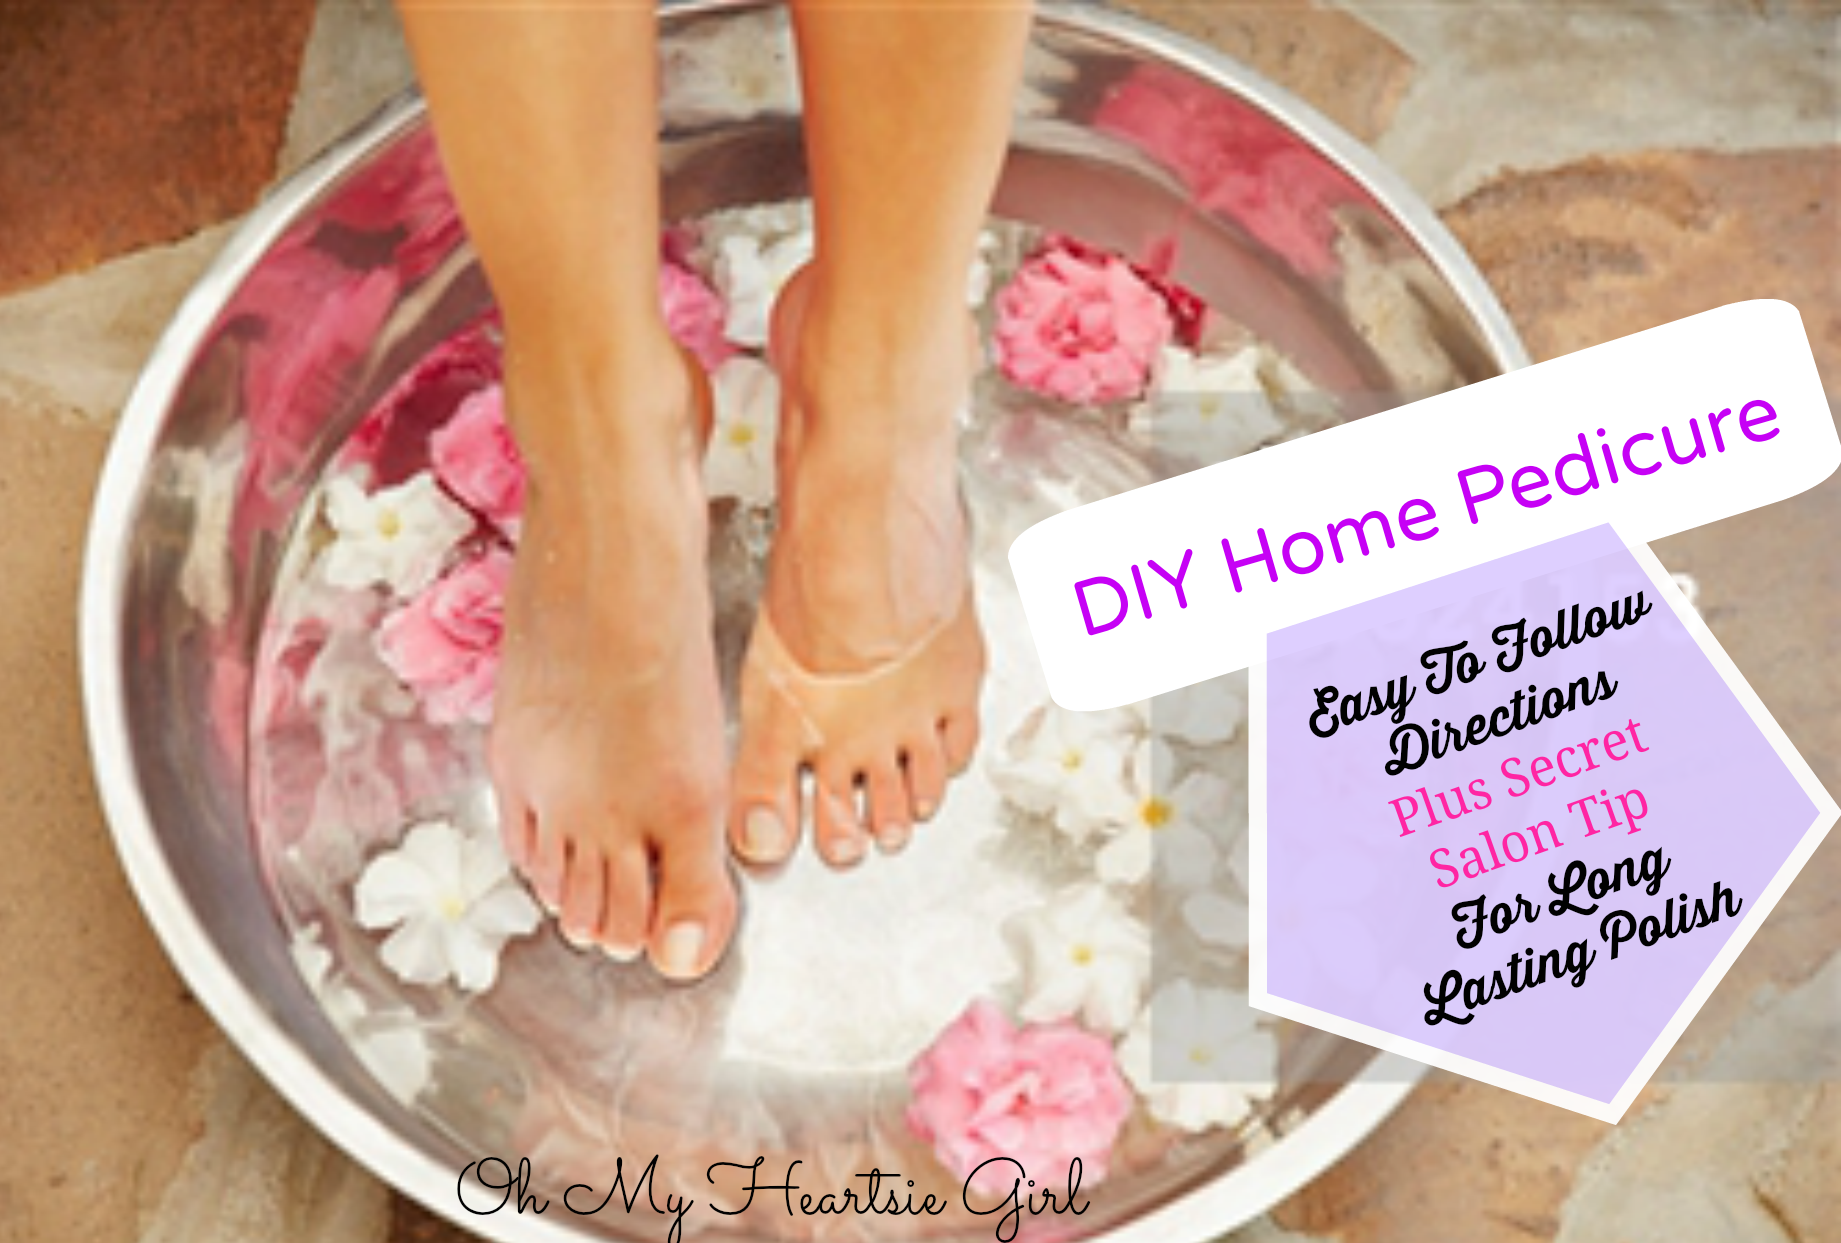 ... At Home DIY Home Pedicure Long Lasting Polish